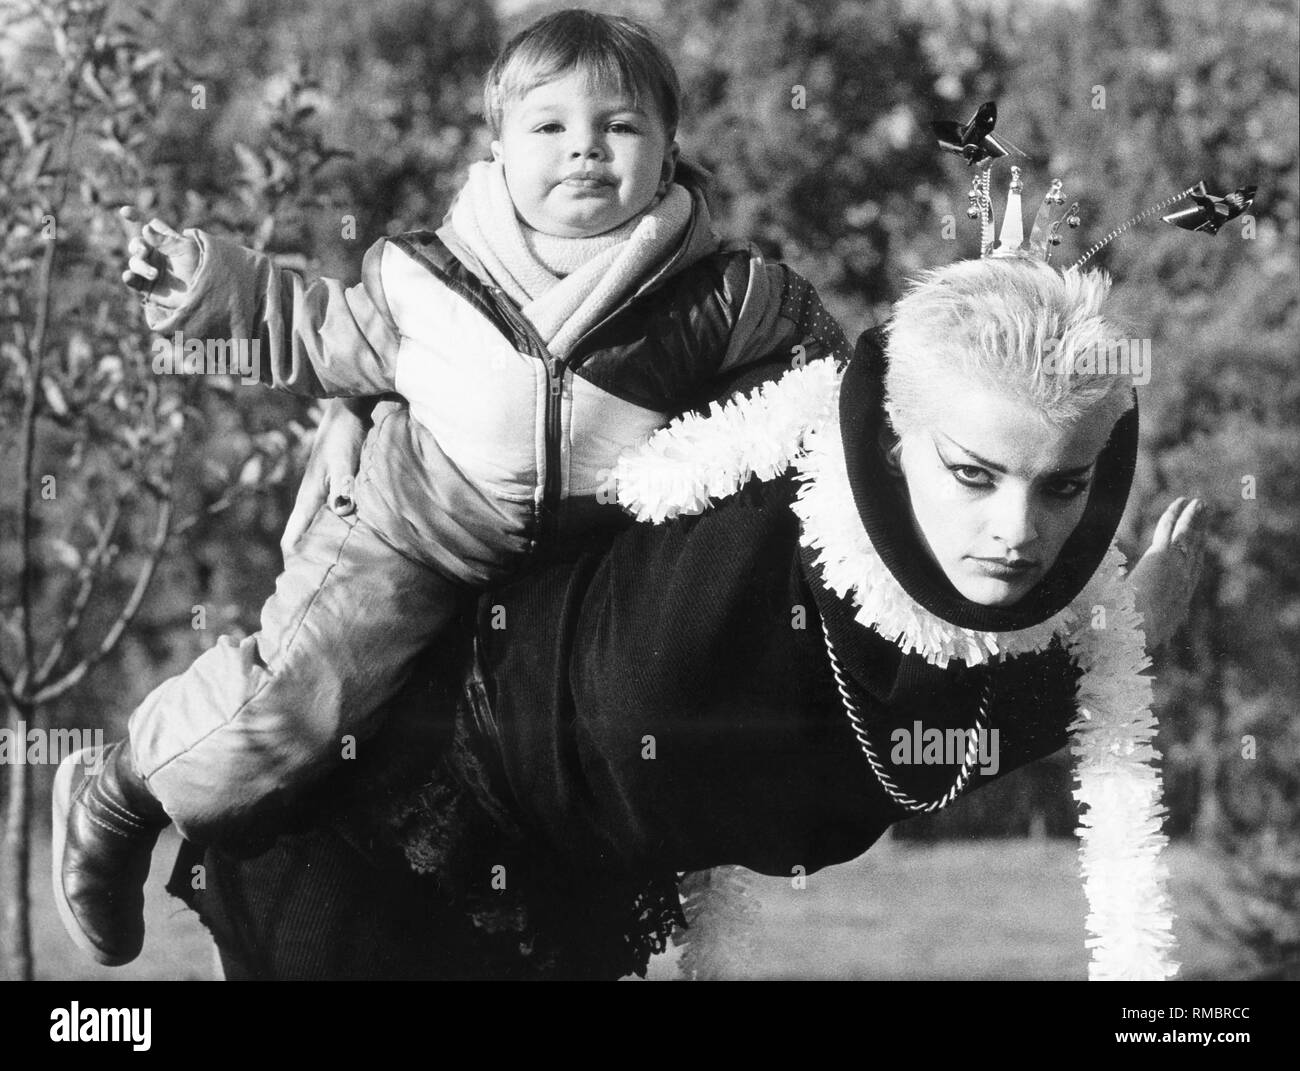 The singer Nina Hagen with her daughter Cosma Shiva on her back. - Stock Image